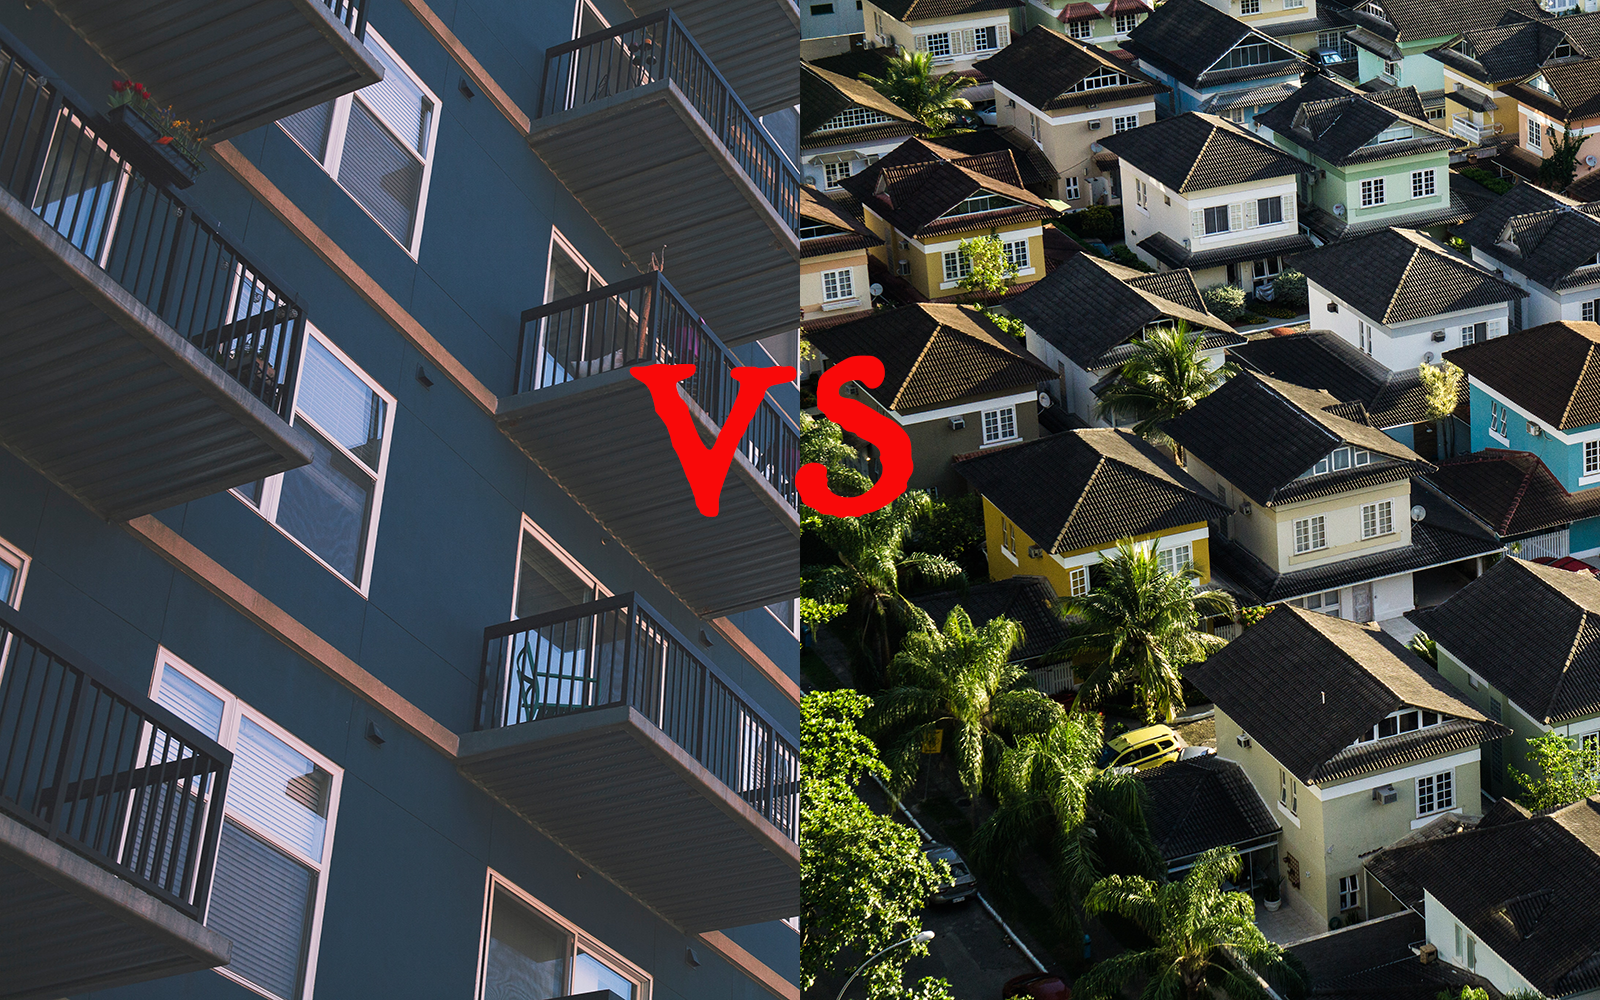 Condo vs. Free Standing Property For Your Airbnb - Pros and Cons of Each